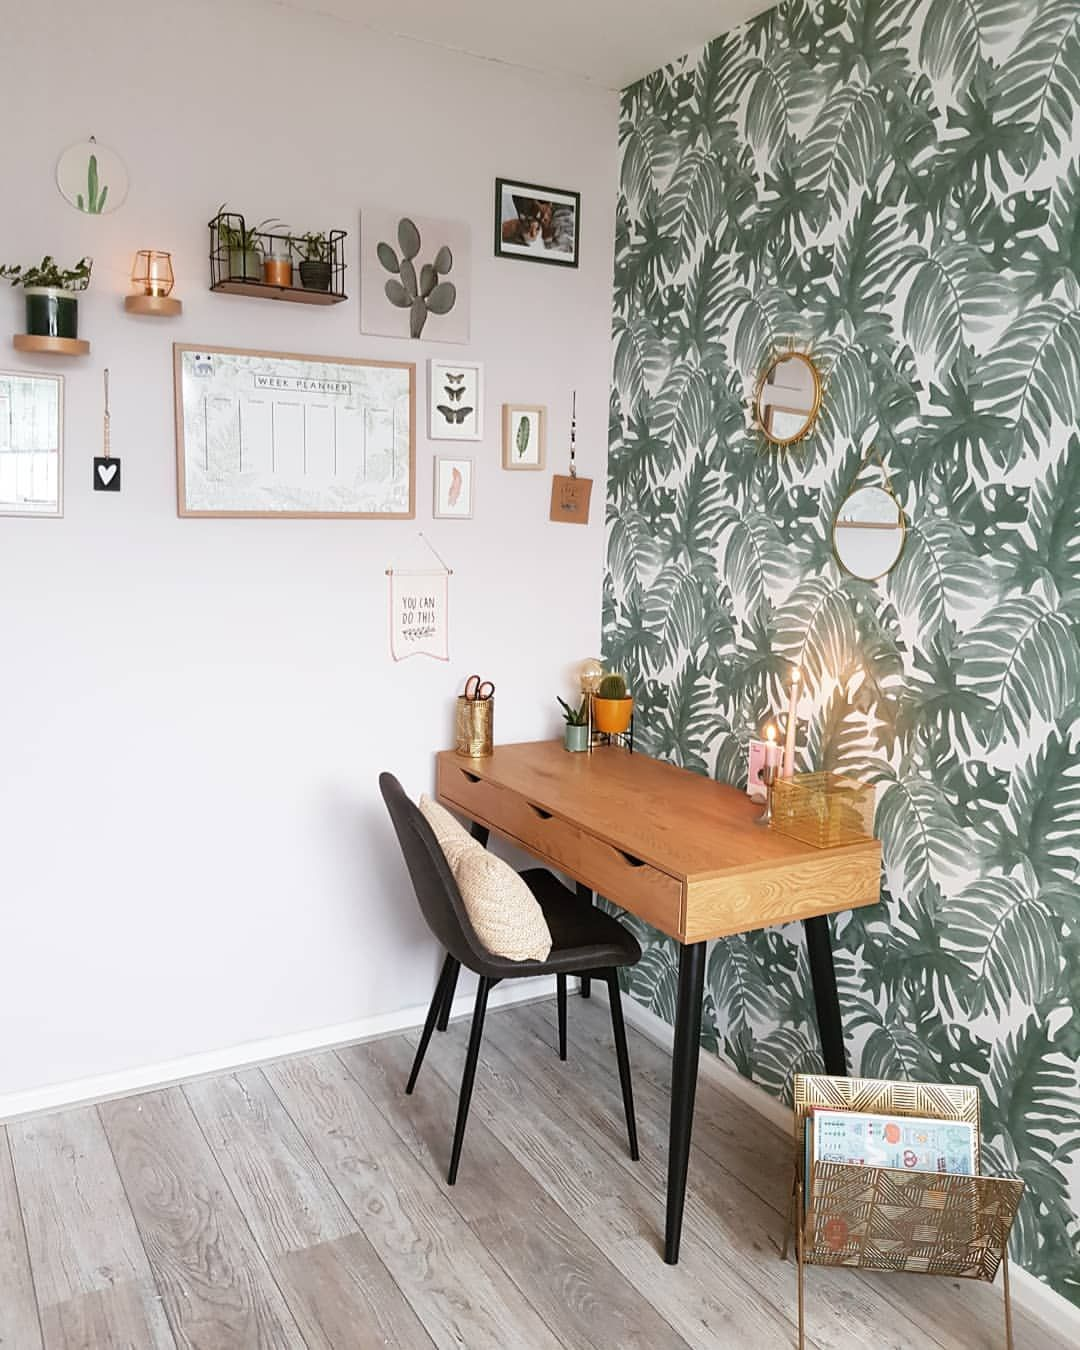 Industrial Study Room: Die Wand Is Echt Gaaf @liesinterior In 2020